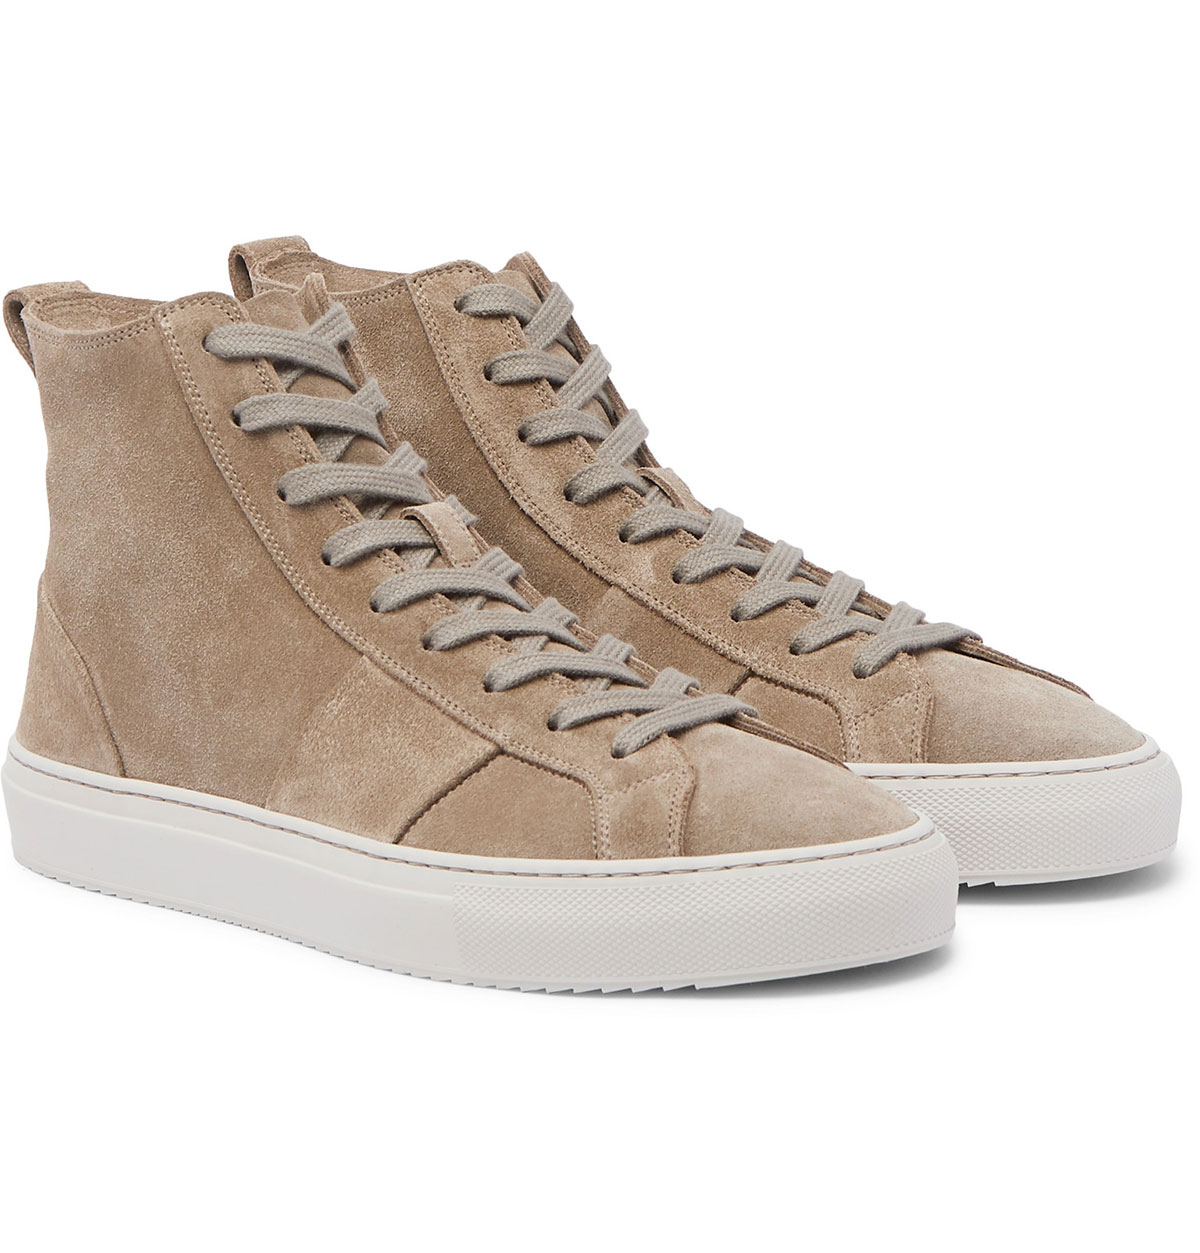 Mr P Larry Suede High Top Sneakers